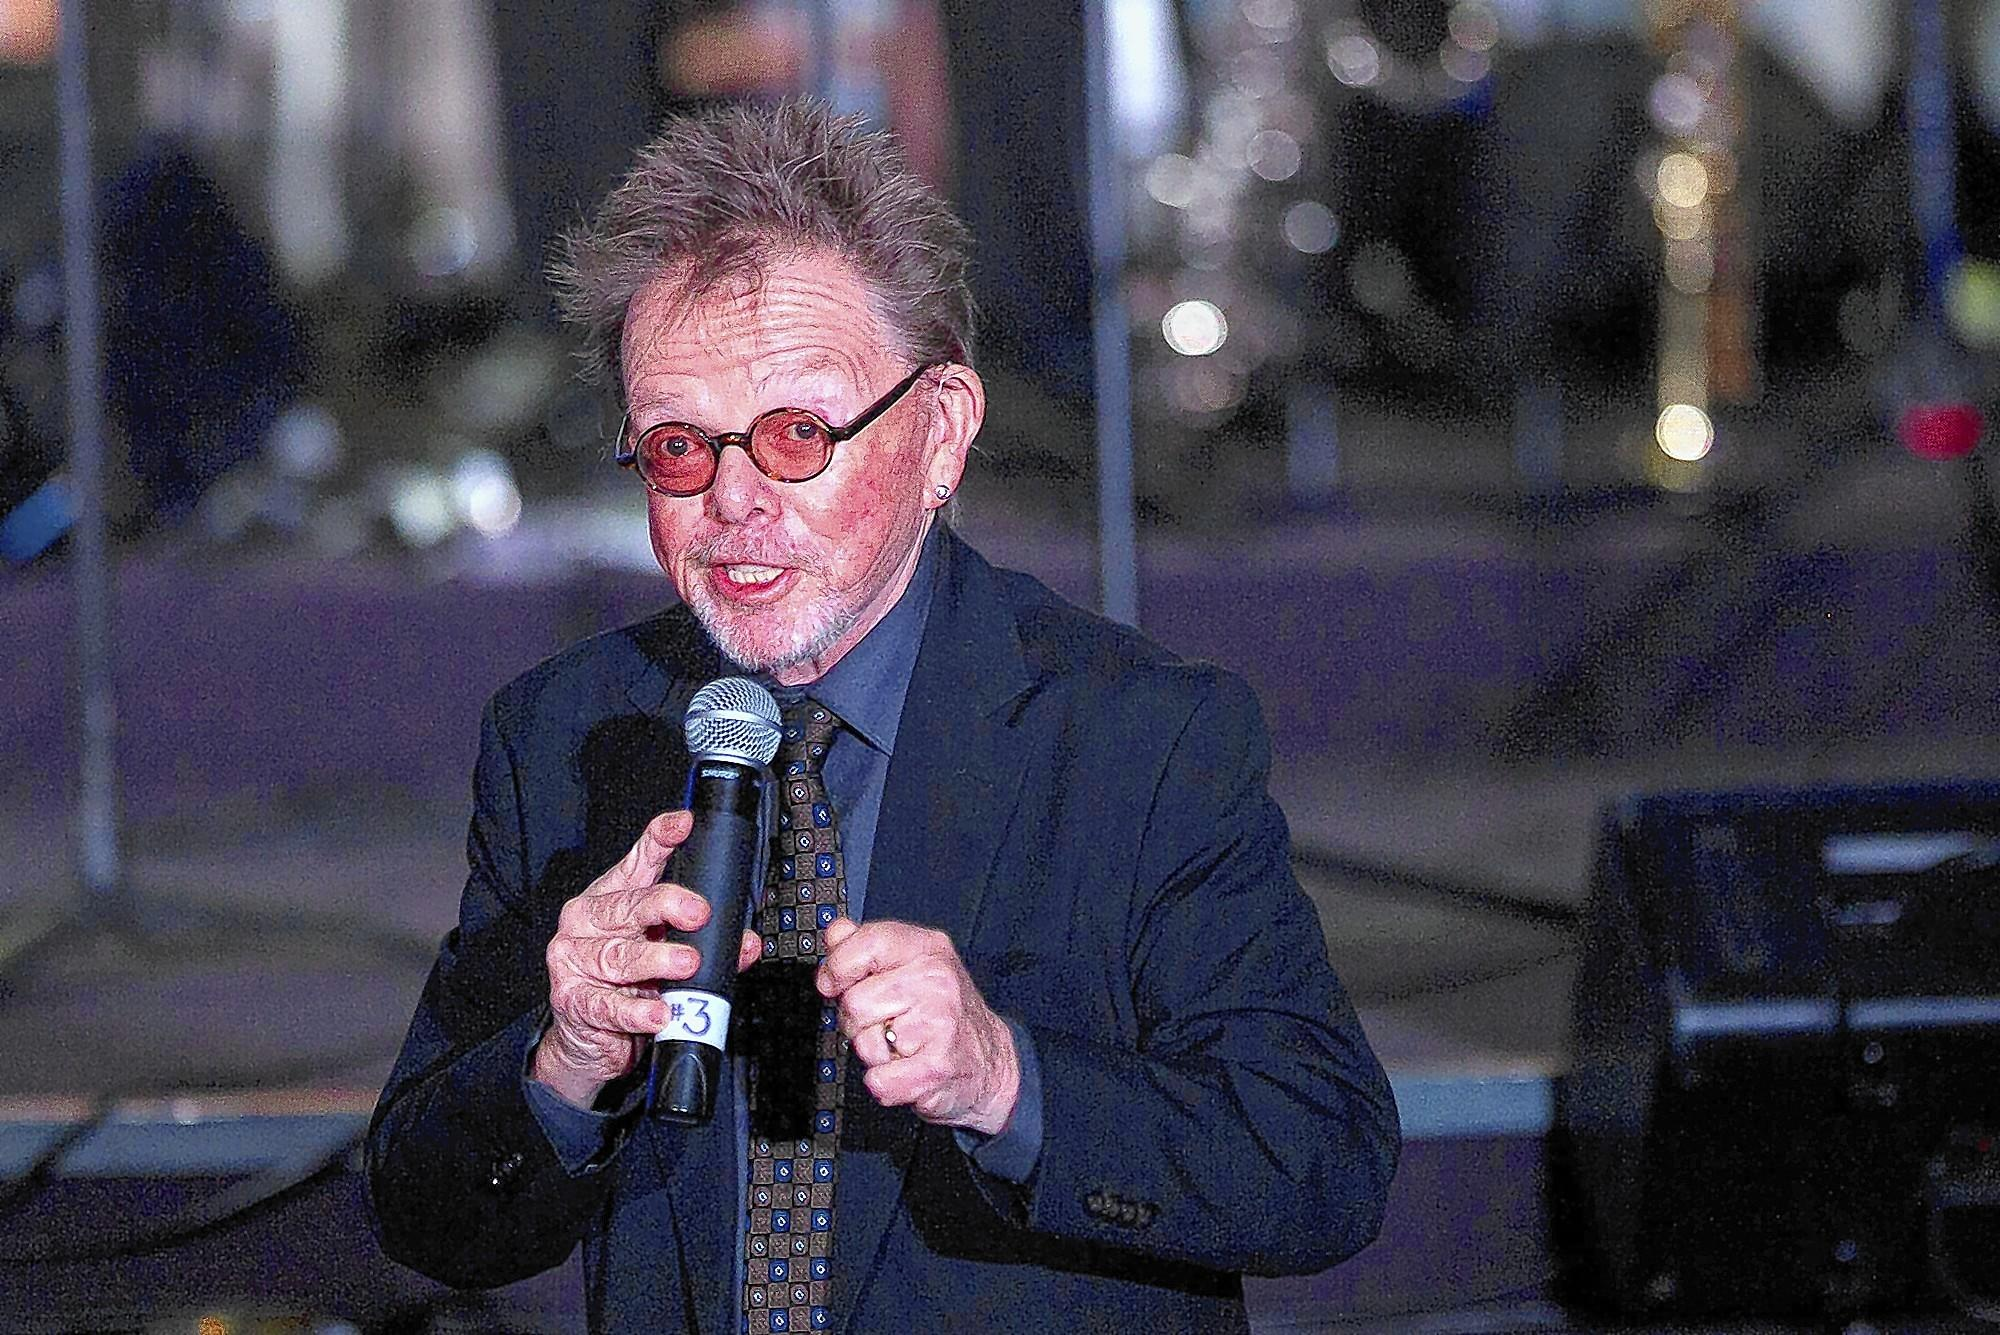 Paul Williams talks to the audience at University Synagogue in Irvine on Thursday during the Paul Williams Song Festival. (Scott Smeltzer, Daily Pilot)